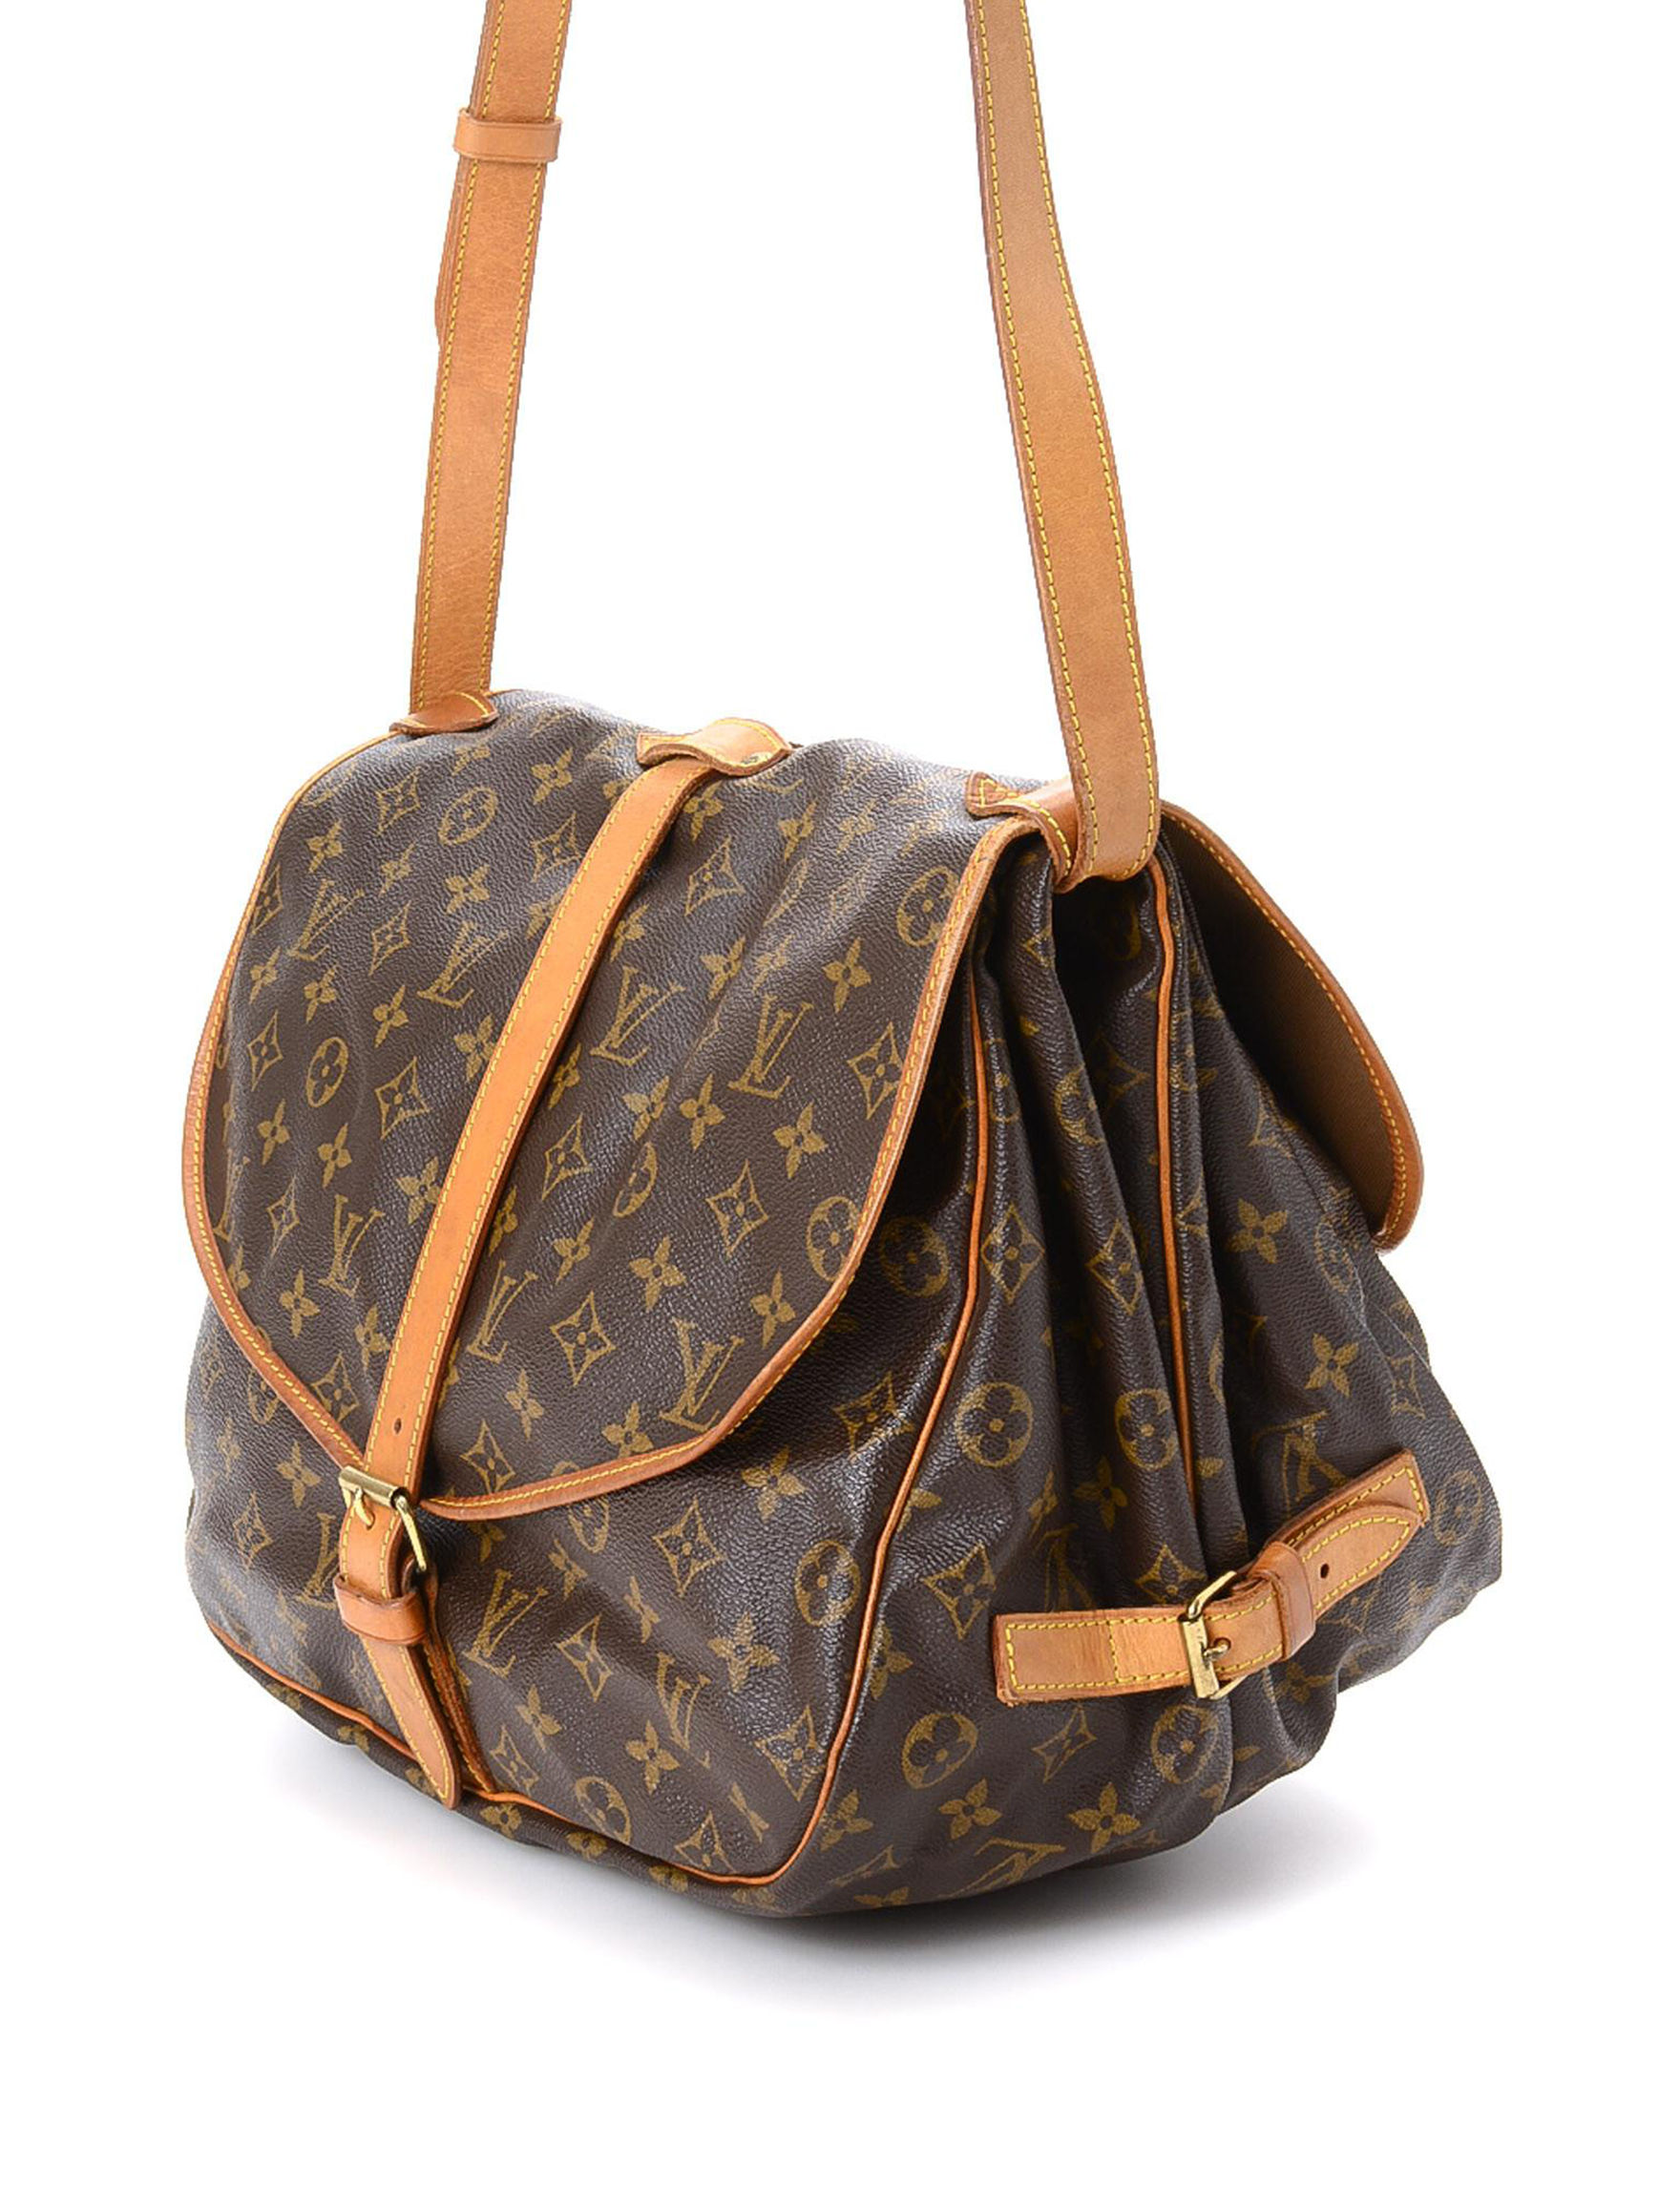 72a0268fd573 Luxury Pre-Owned Louis Vuitton Saumur 35 - FINAL SALE. Online Only. WEB ID    538973. product. product. product